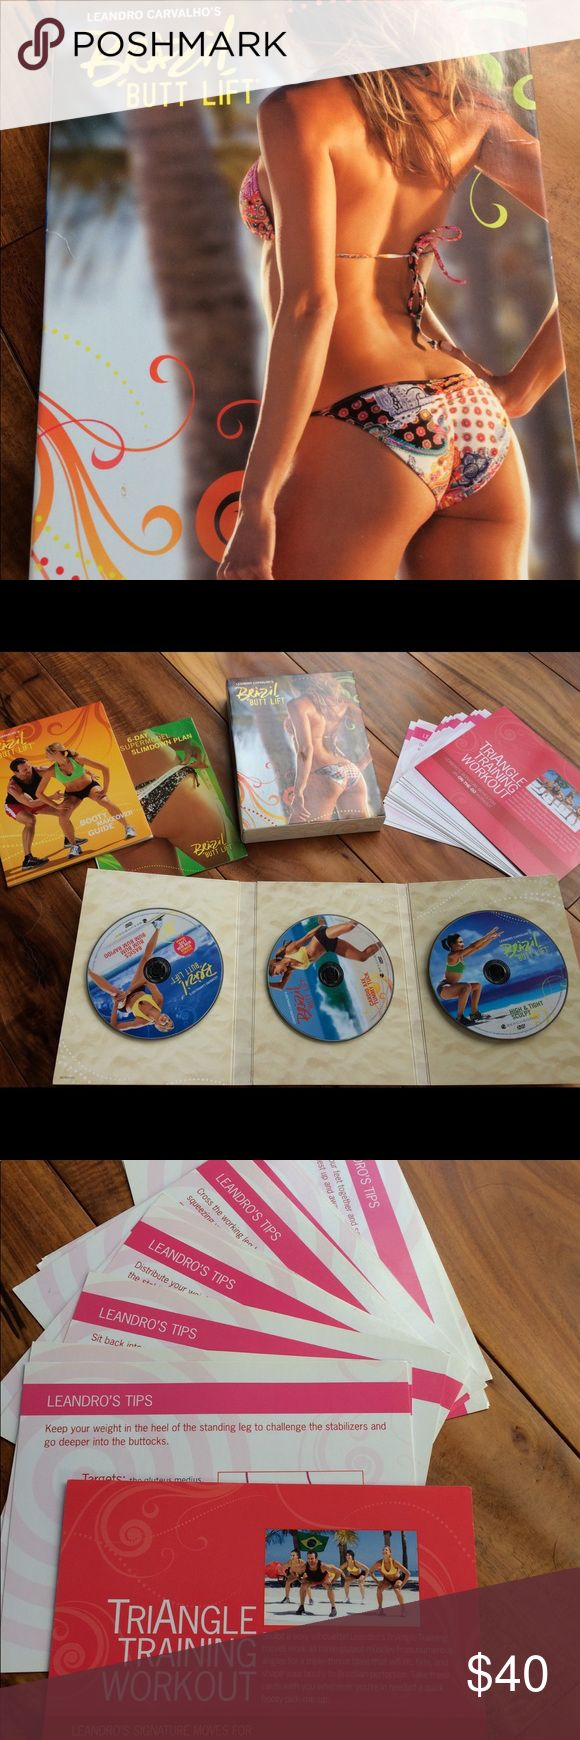 Beachbody Brazilian Butt Lift DVD set Excellent condition. No scratches. Great, fun dance workout. Includes the workout DVDs, the travel workout card set, and the workout calendar. Not included is a band and the nutrition booklet. Other